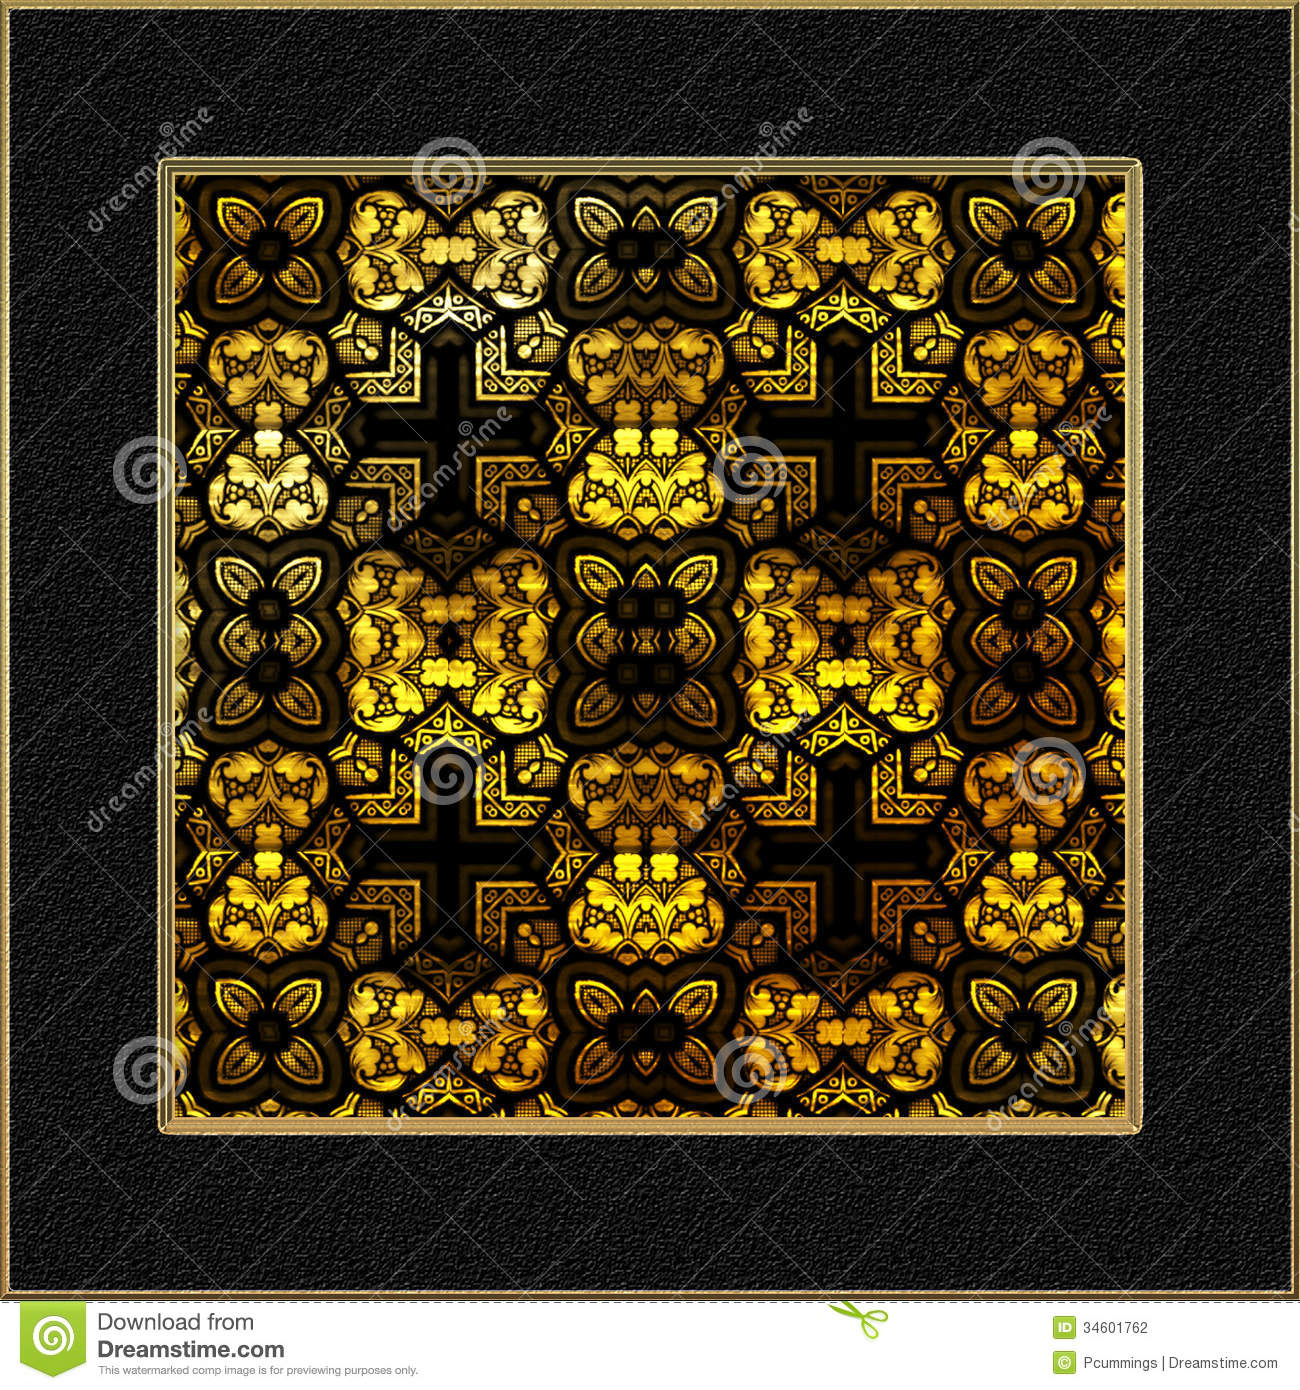 Decorative stained glass window panel stock illustration for Decorative stained glass windows